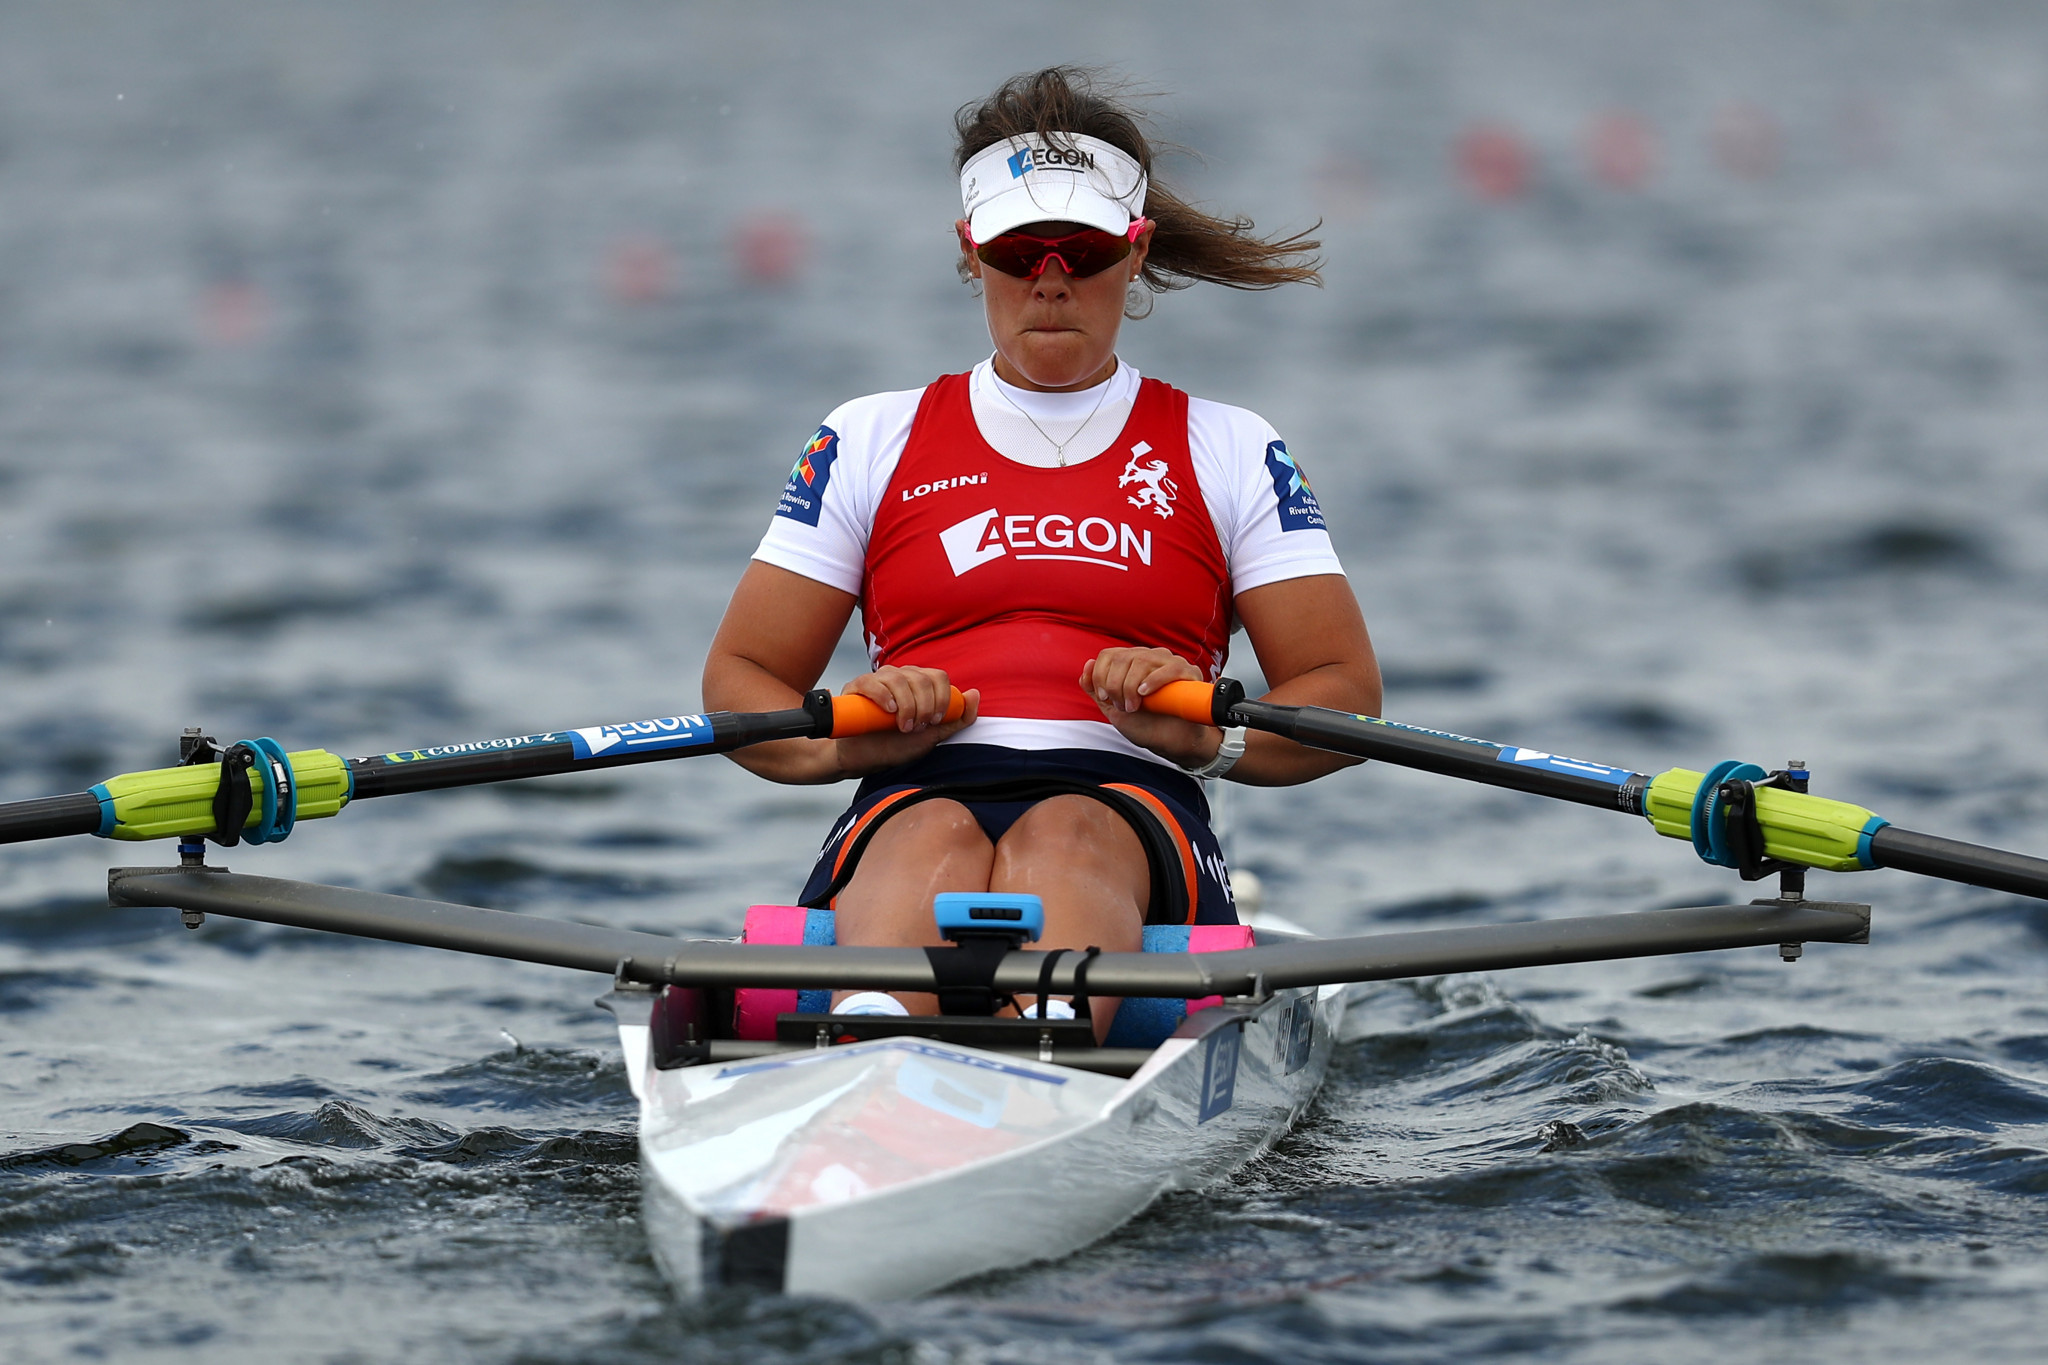 Paralympic champion Annika van der Meer teamed up with Corne de Koning to win a European title in Poland ©Getty Images